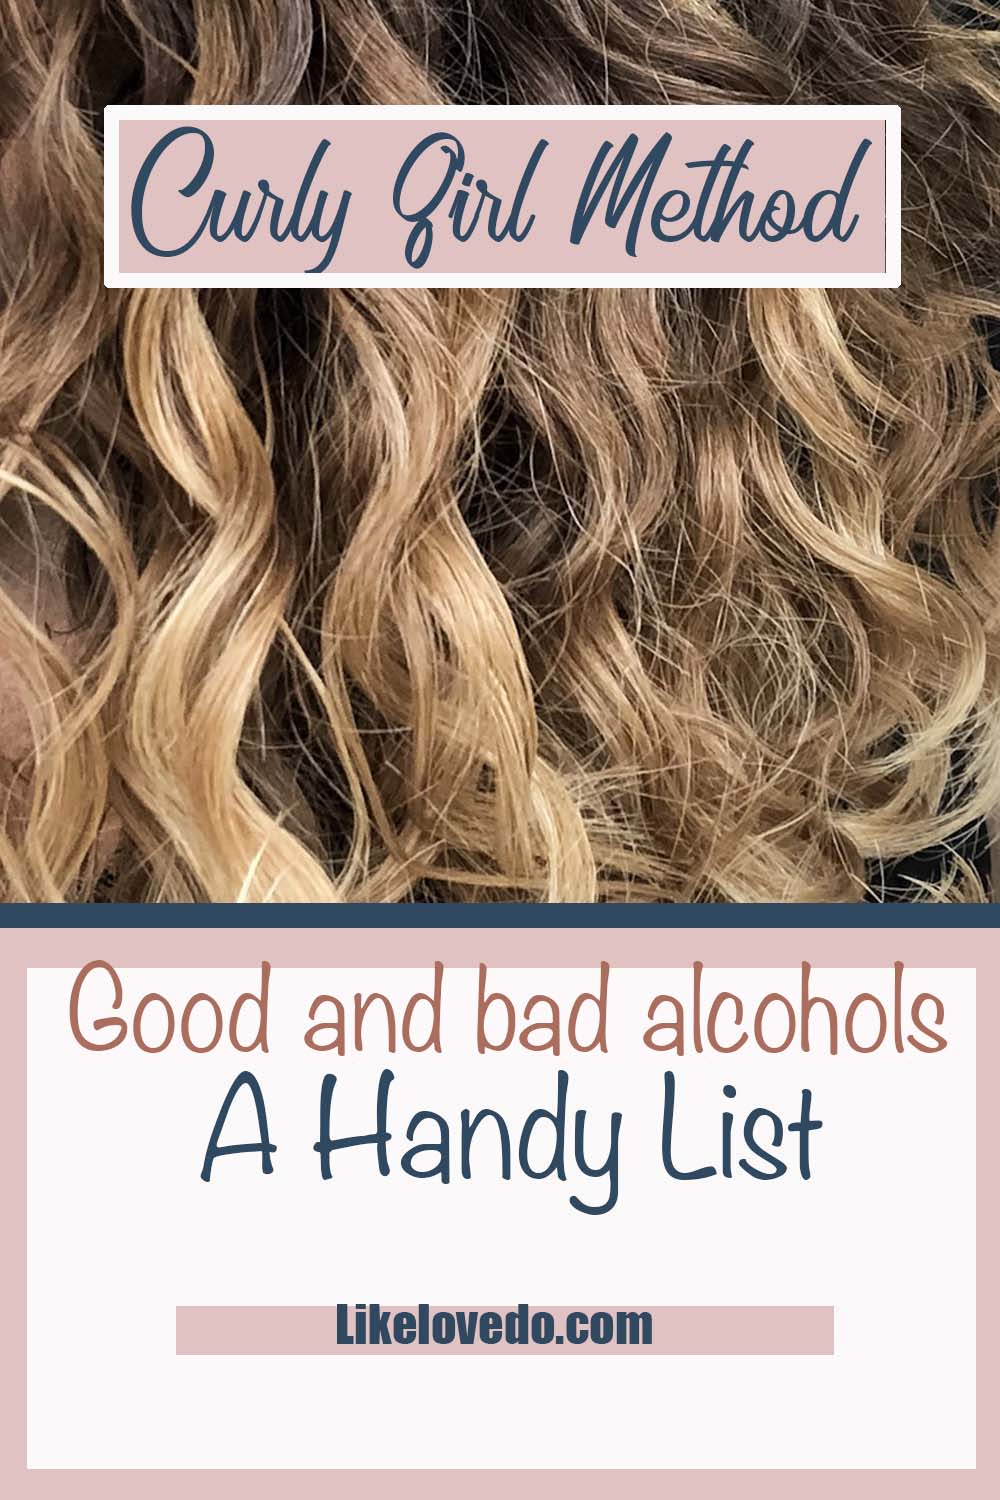 Good and Bad alcohols to avoid when doing the curly girl method